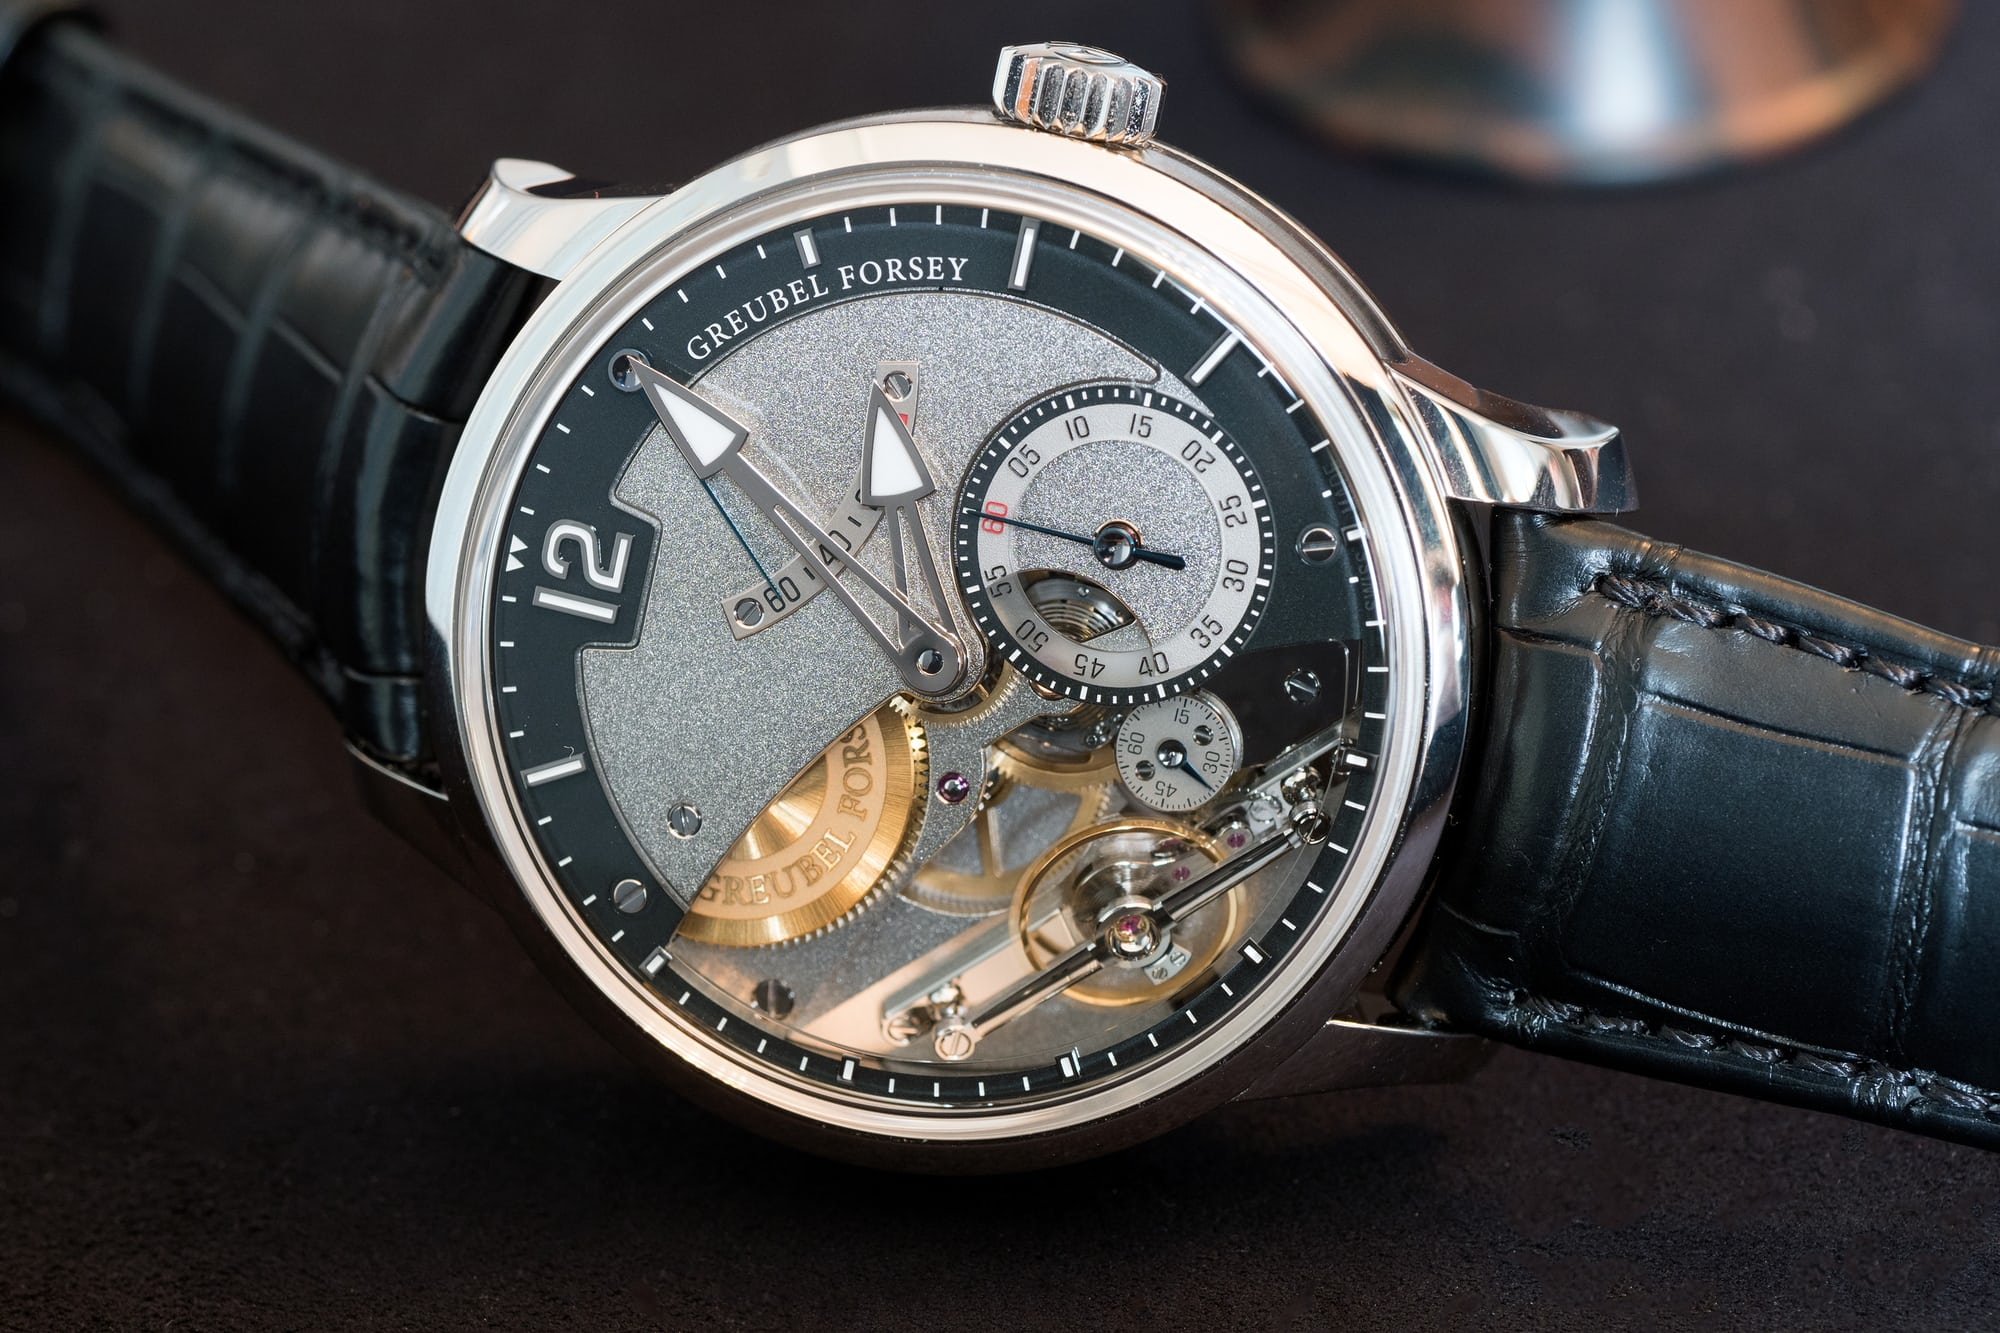 Editors' Picks: Our Grail Watches Of SIHH 2018 Editors' Picks: Our Grail Watches Of SIHH 2018 P1140687